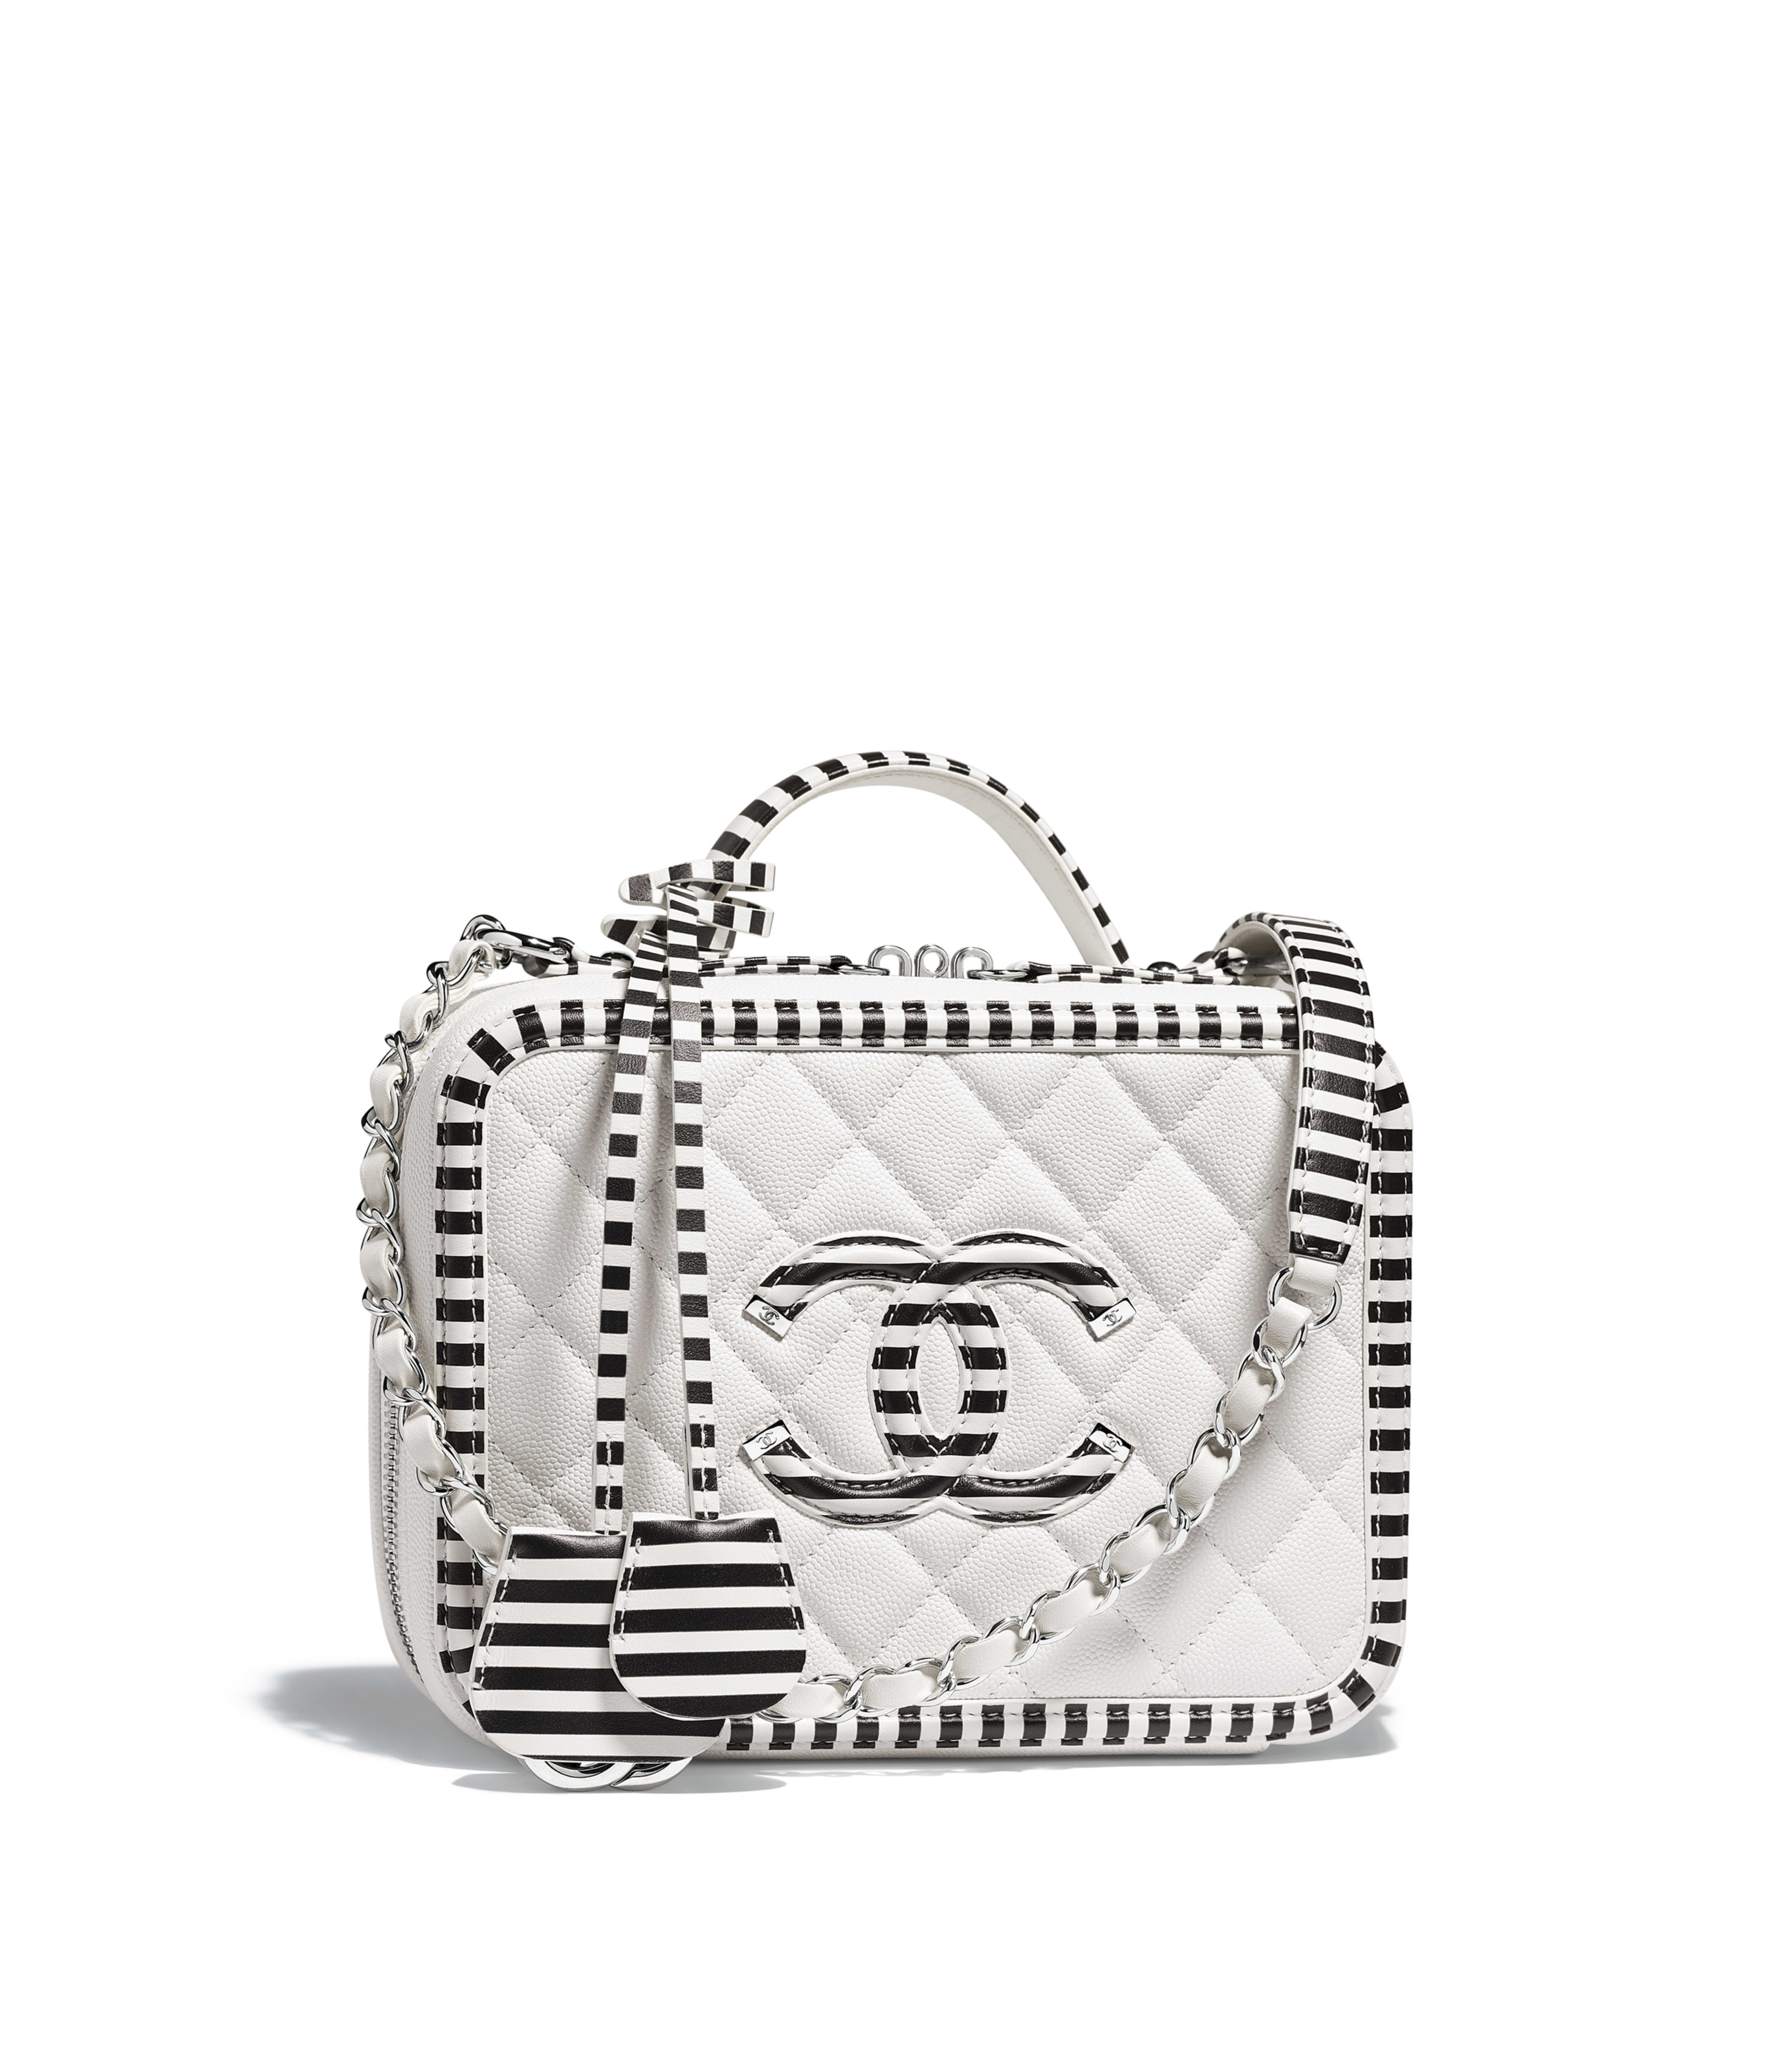 66bc23271c5c Pink And White Chanel Bag